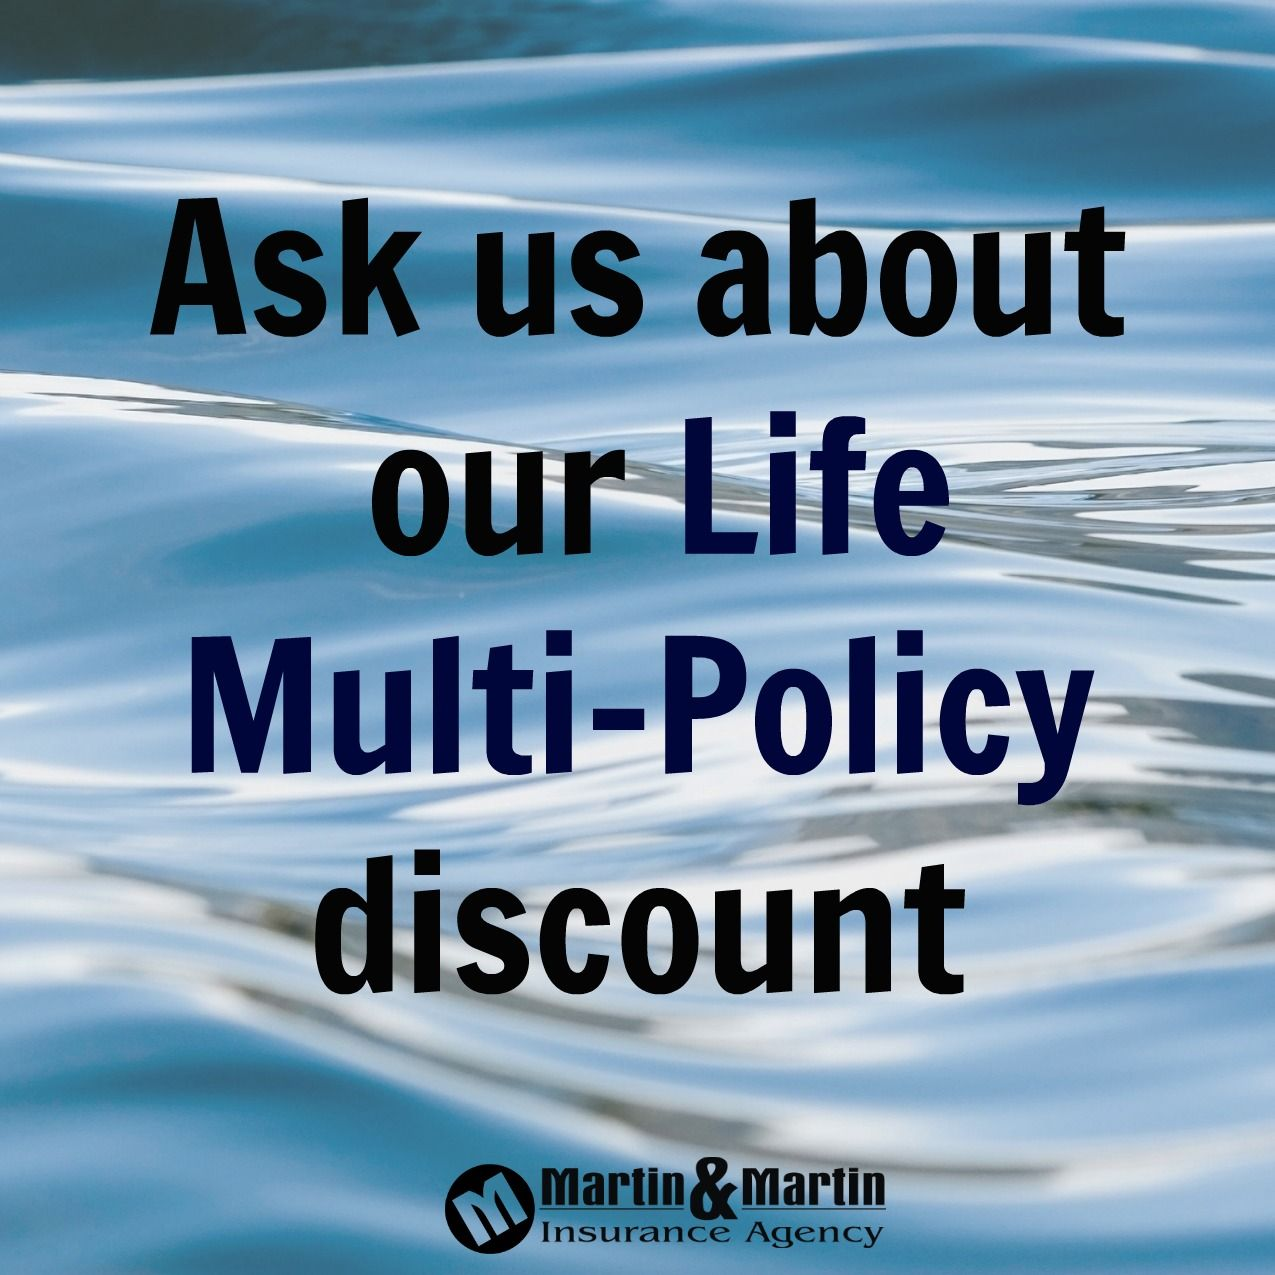 Did ya know... You can recieve a discount on your home & auto when you own an #ErieFamilyLifePolicy? Call M&M to find out more! #InsureYourLove #NoblesvilleInsurance